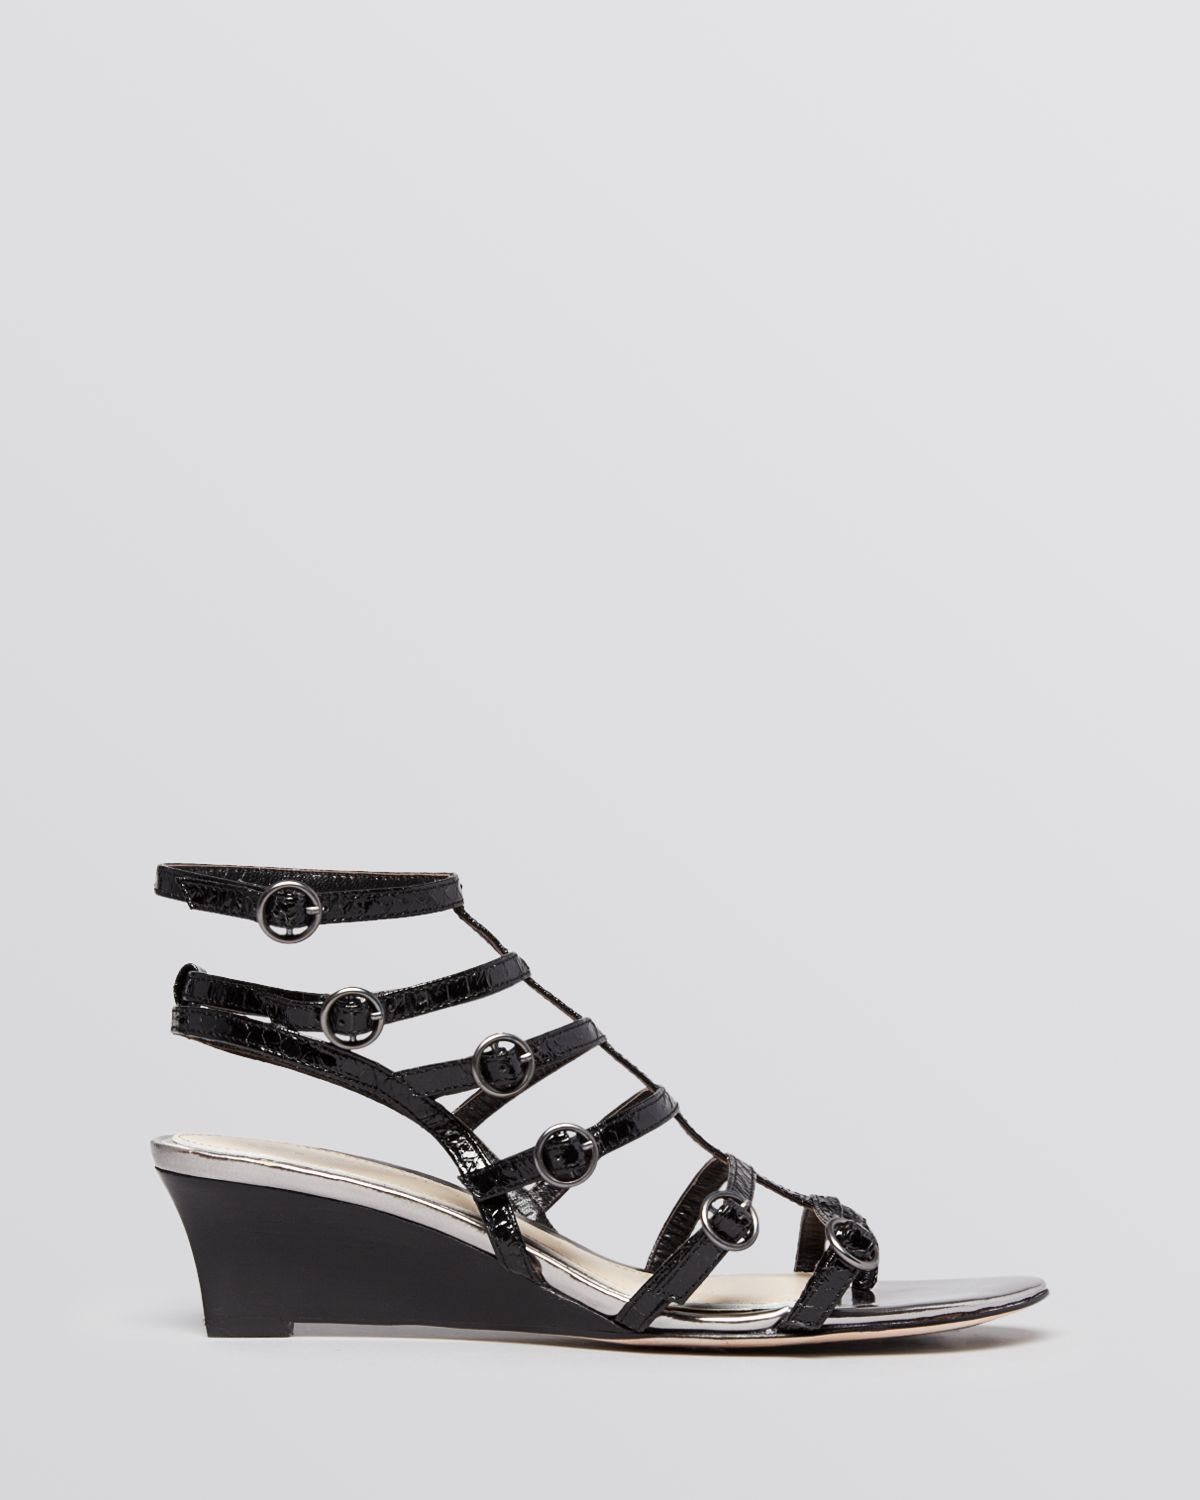 elie tahari open toe gladiator wedge sandals troy in